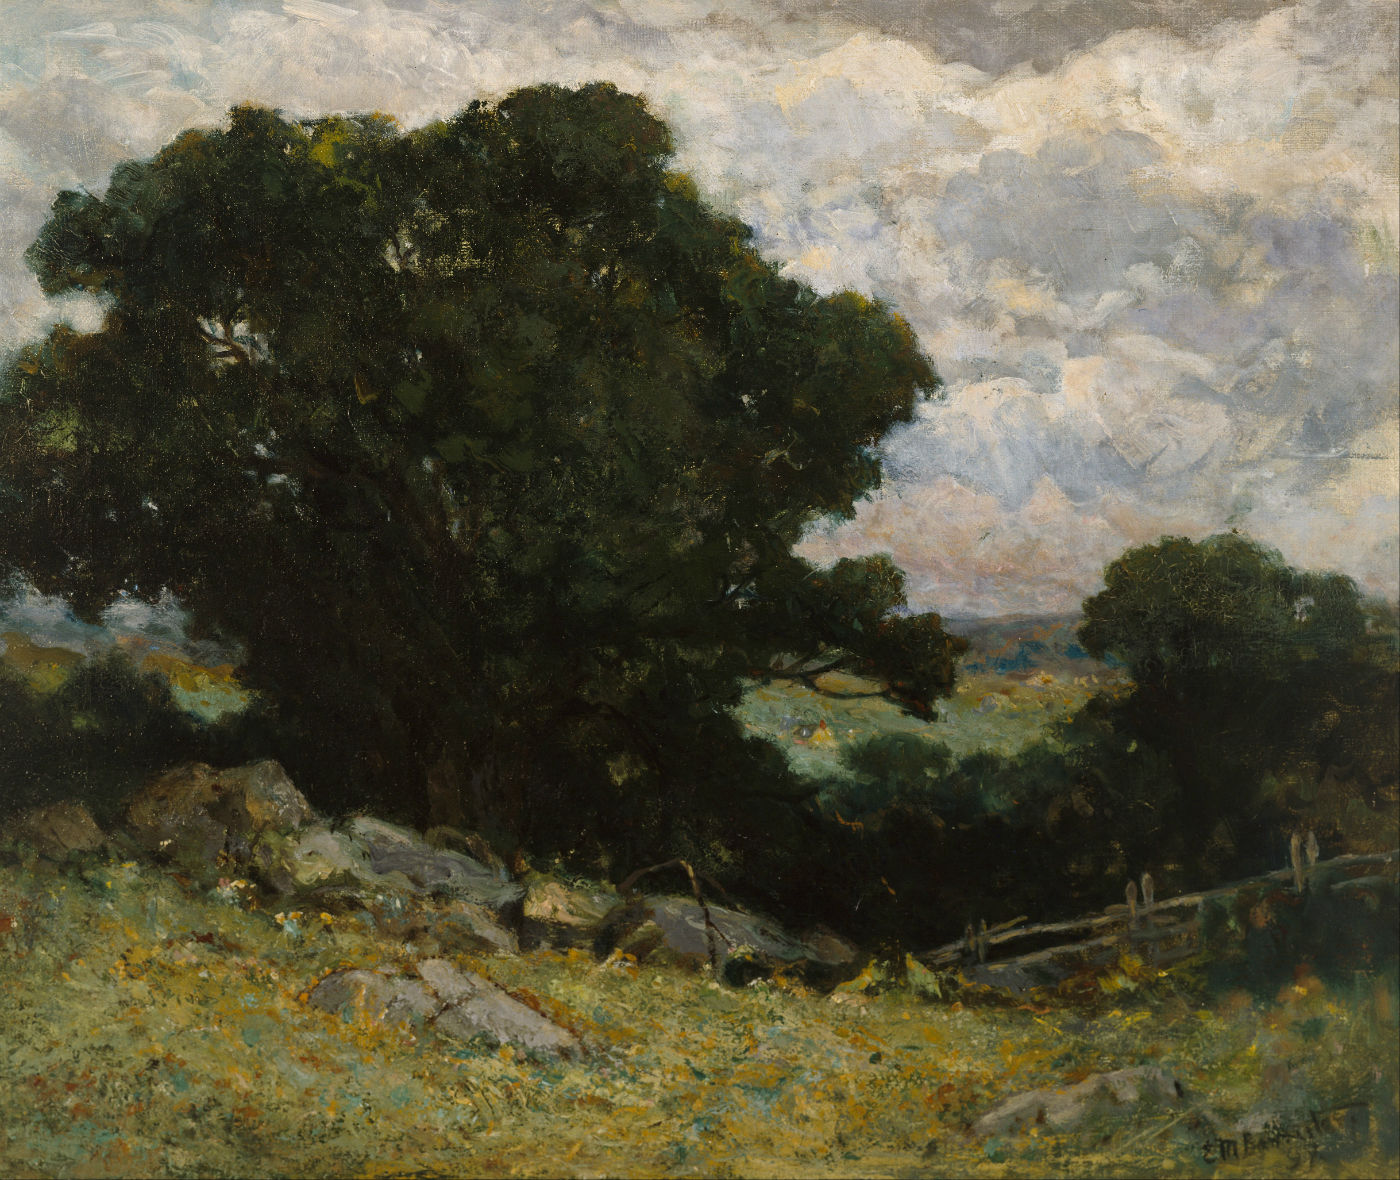 Edward_Mitchell_Bannister_-_Landscape_-_Google_Art_Project